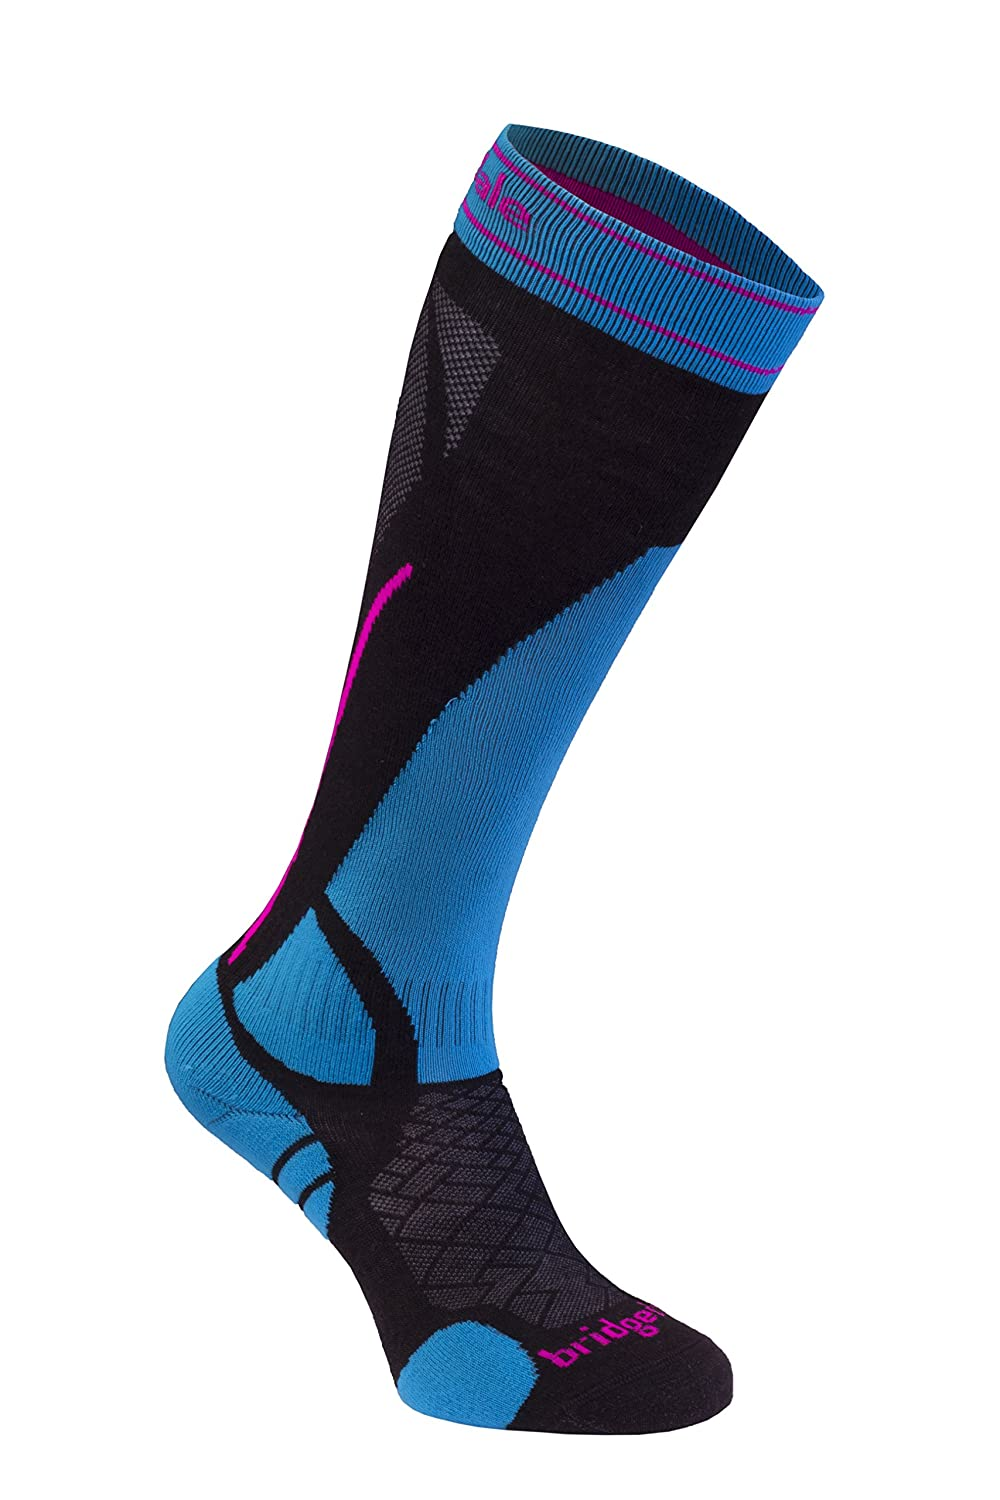 Bridgedale Women's Vertige Light Socks